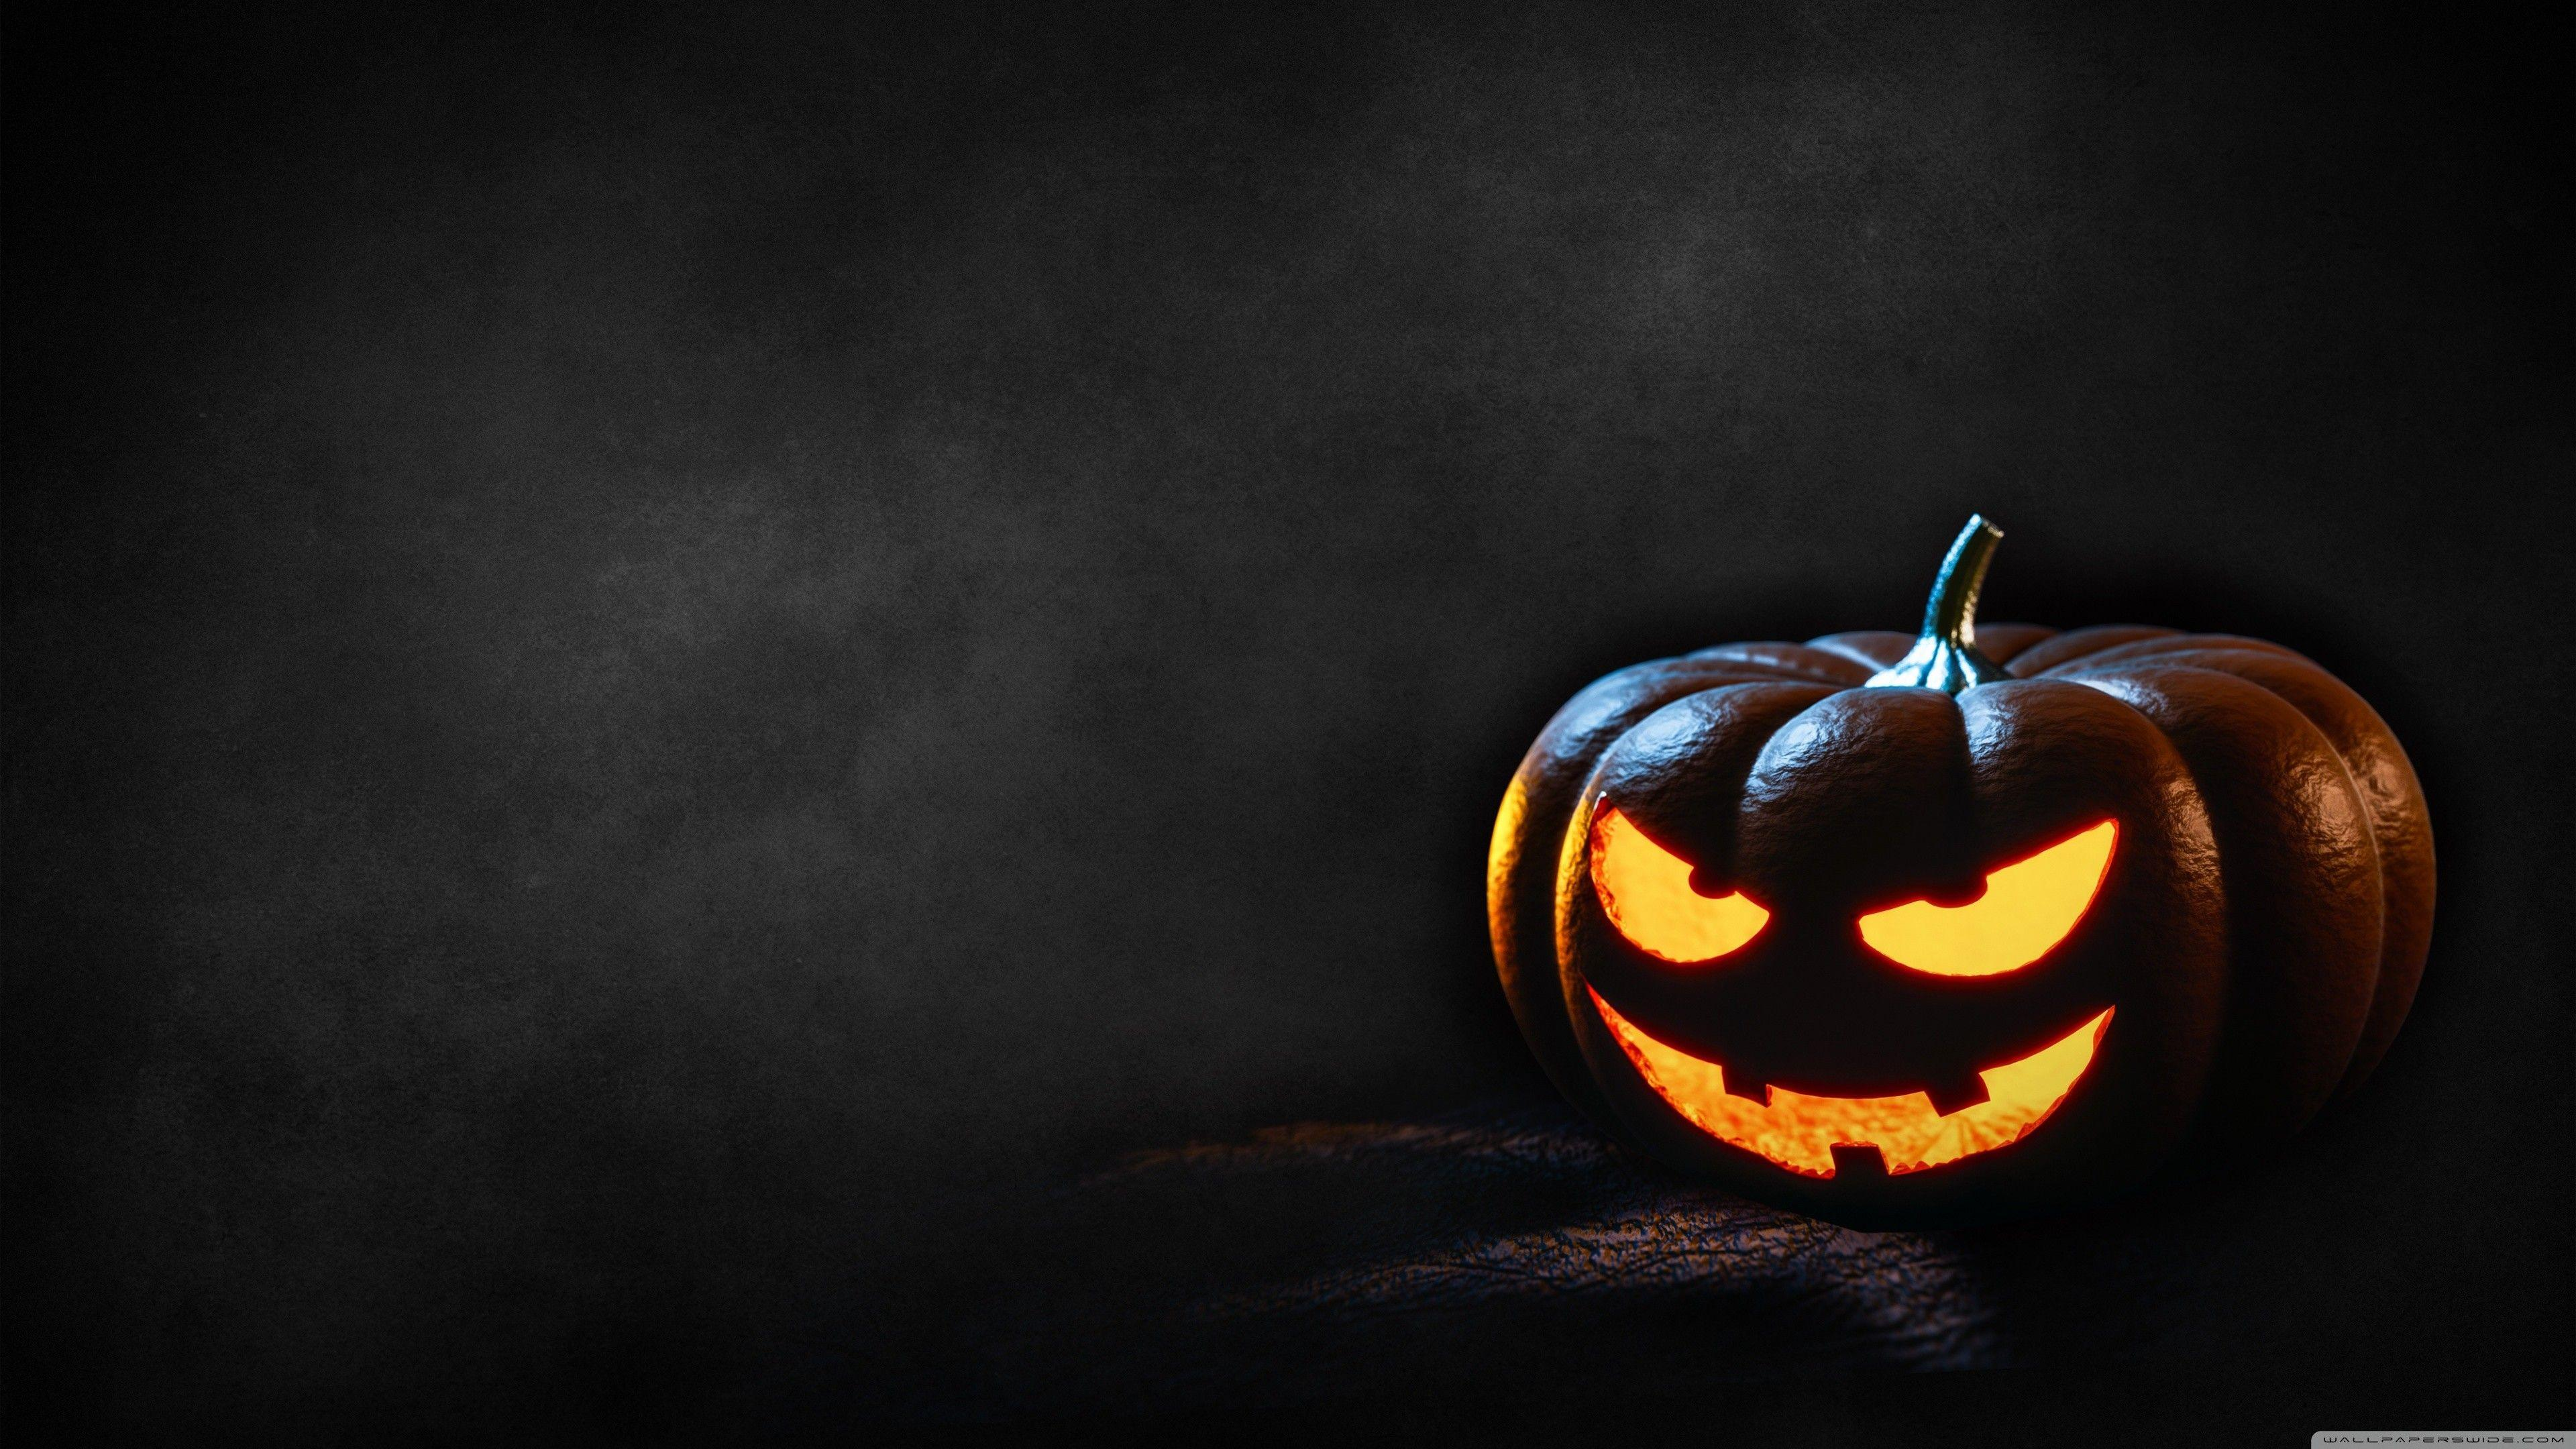 Wallpapers of Halloween (76+ images)